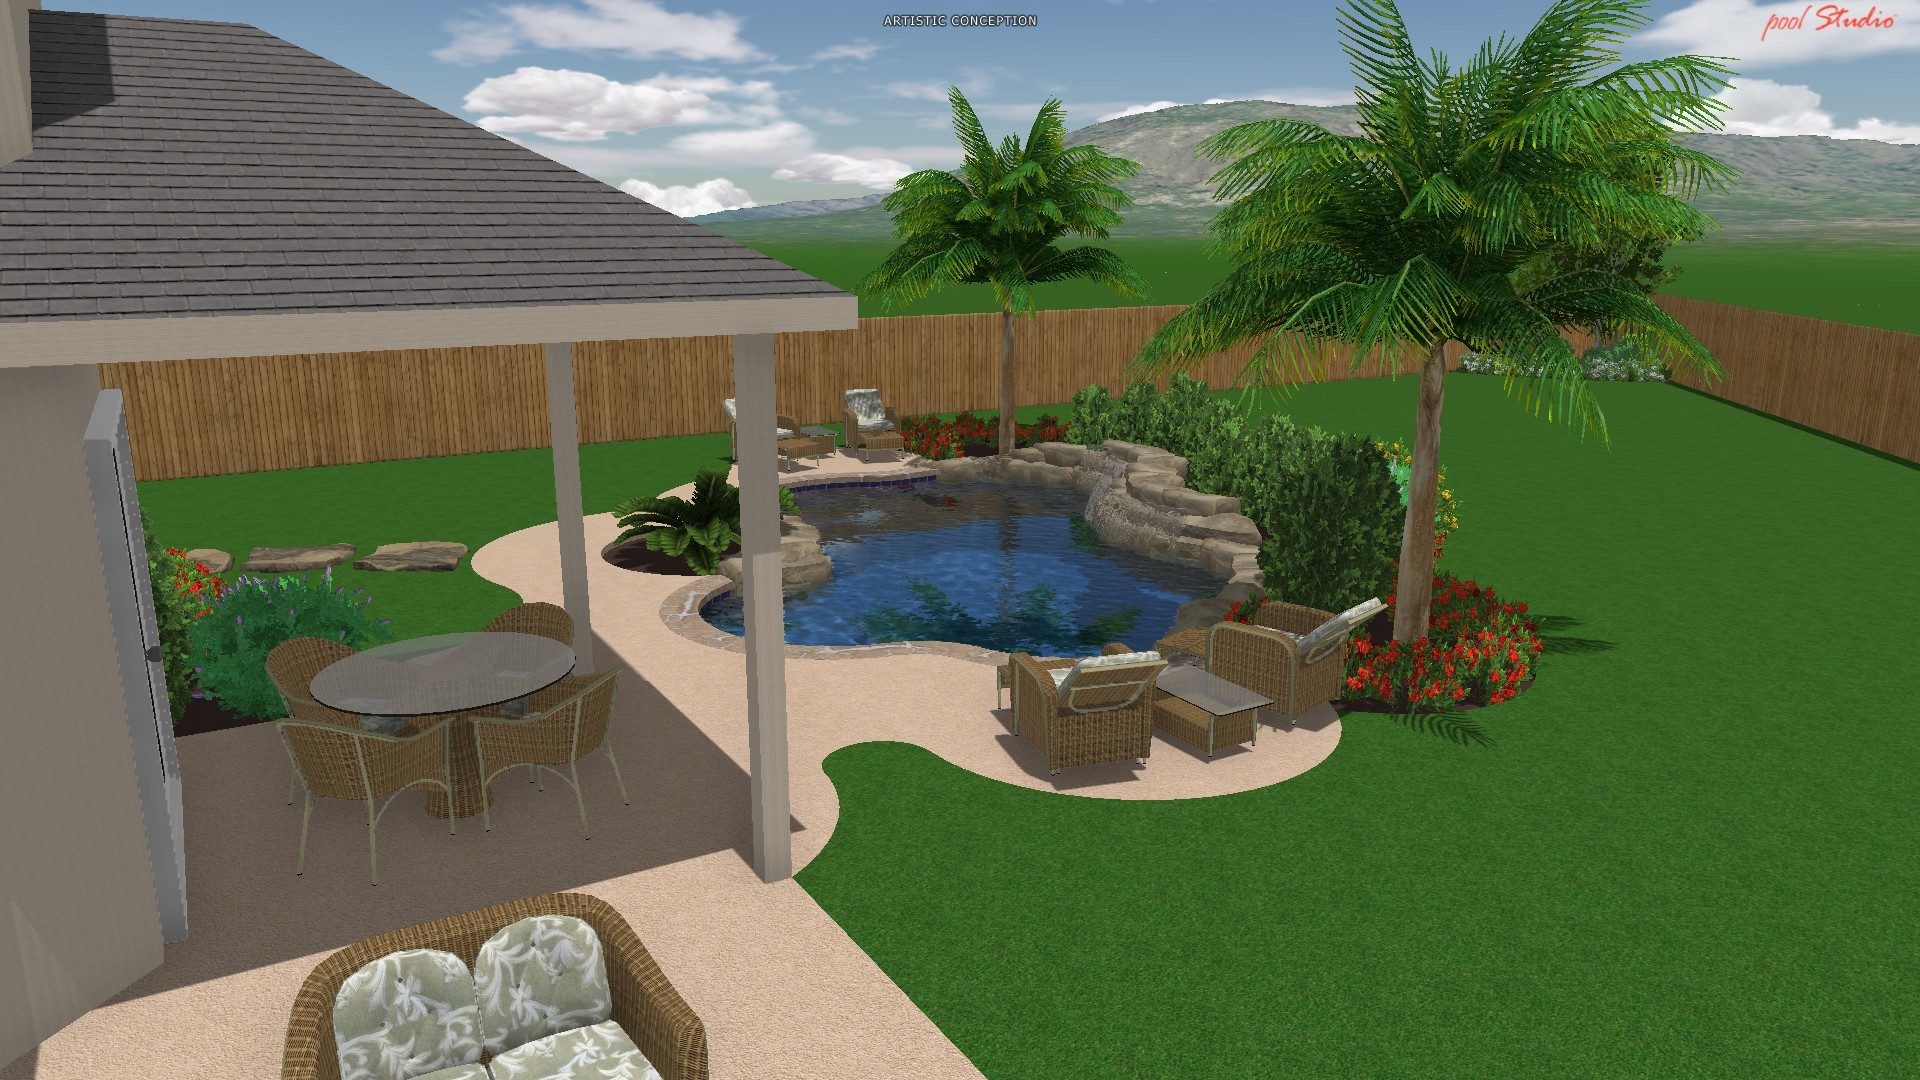 Design by price reliant pools pool builder austin tx for 50000 pool design